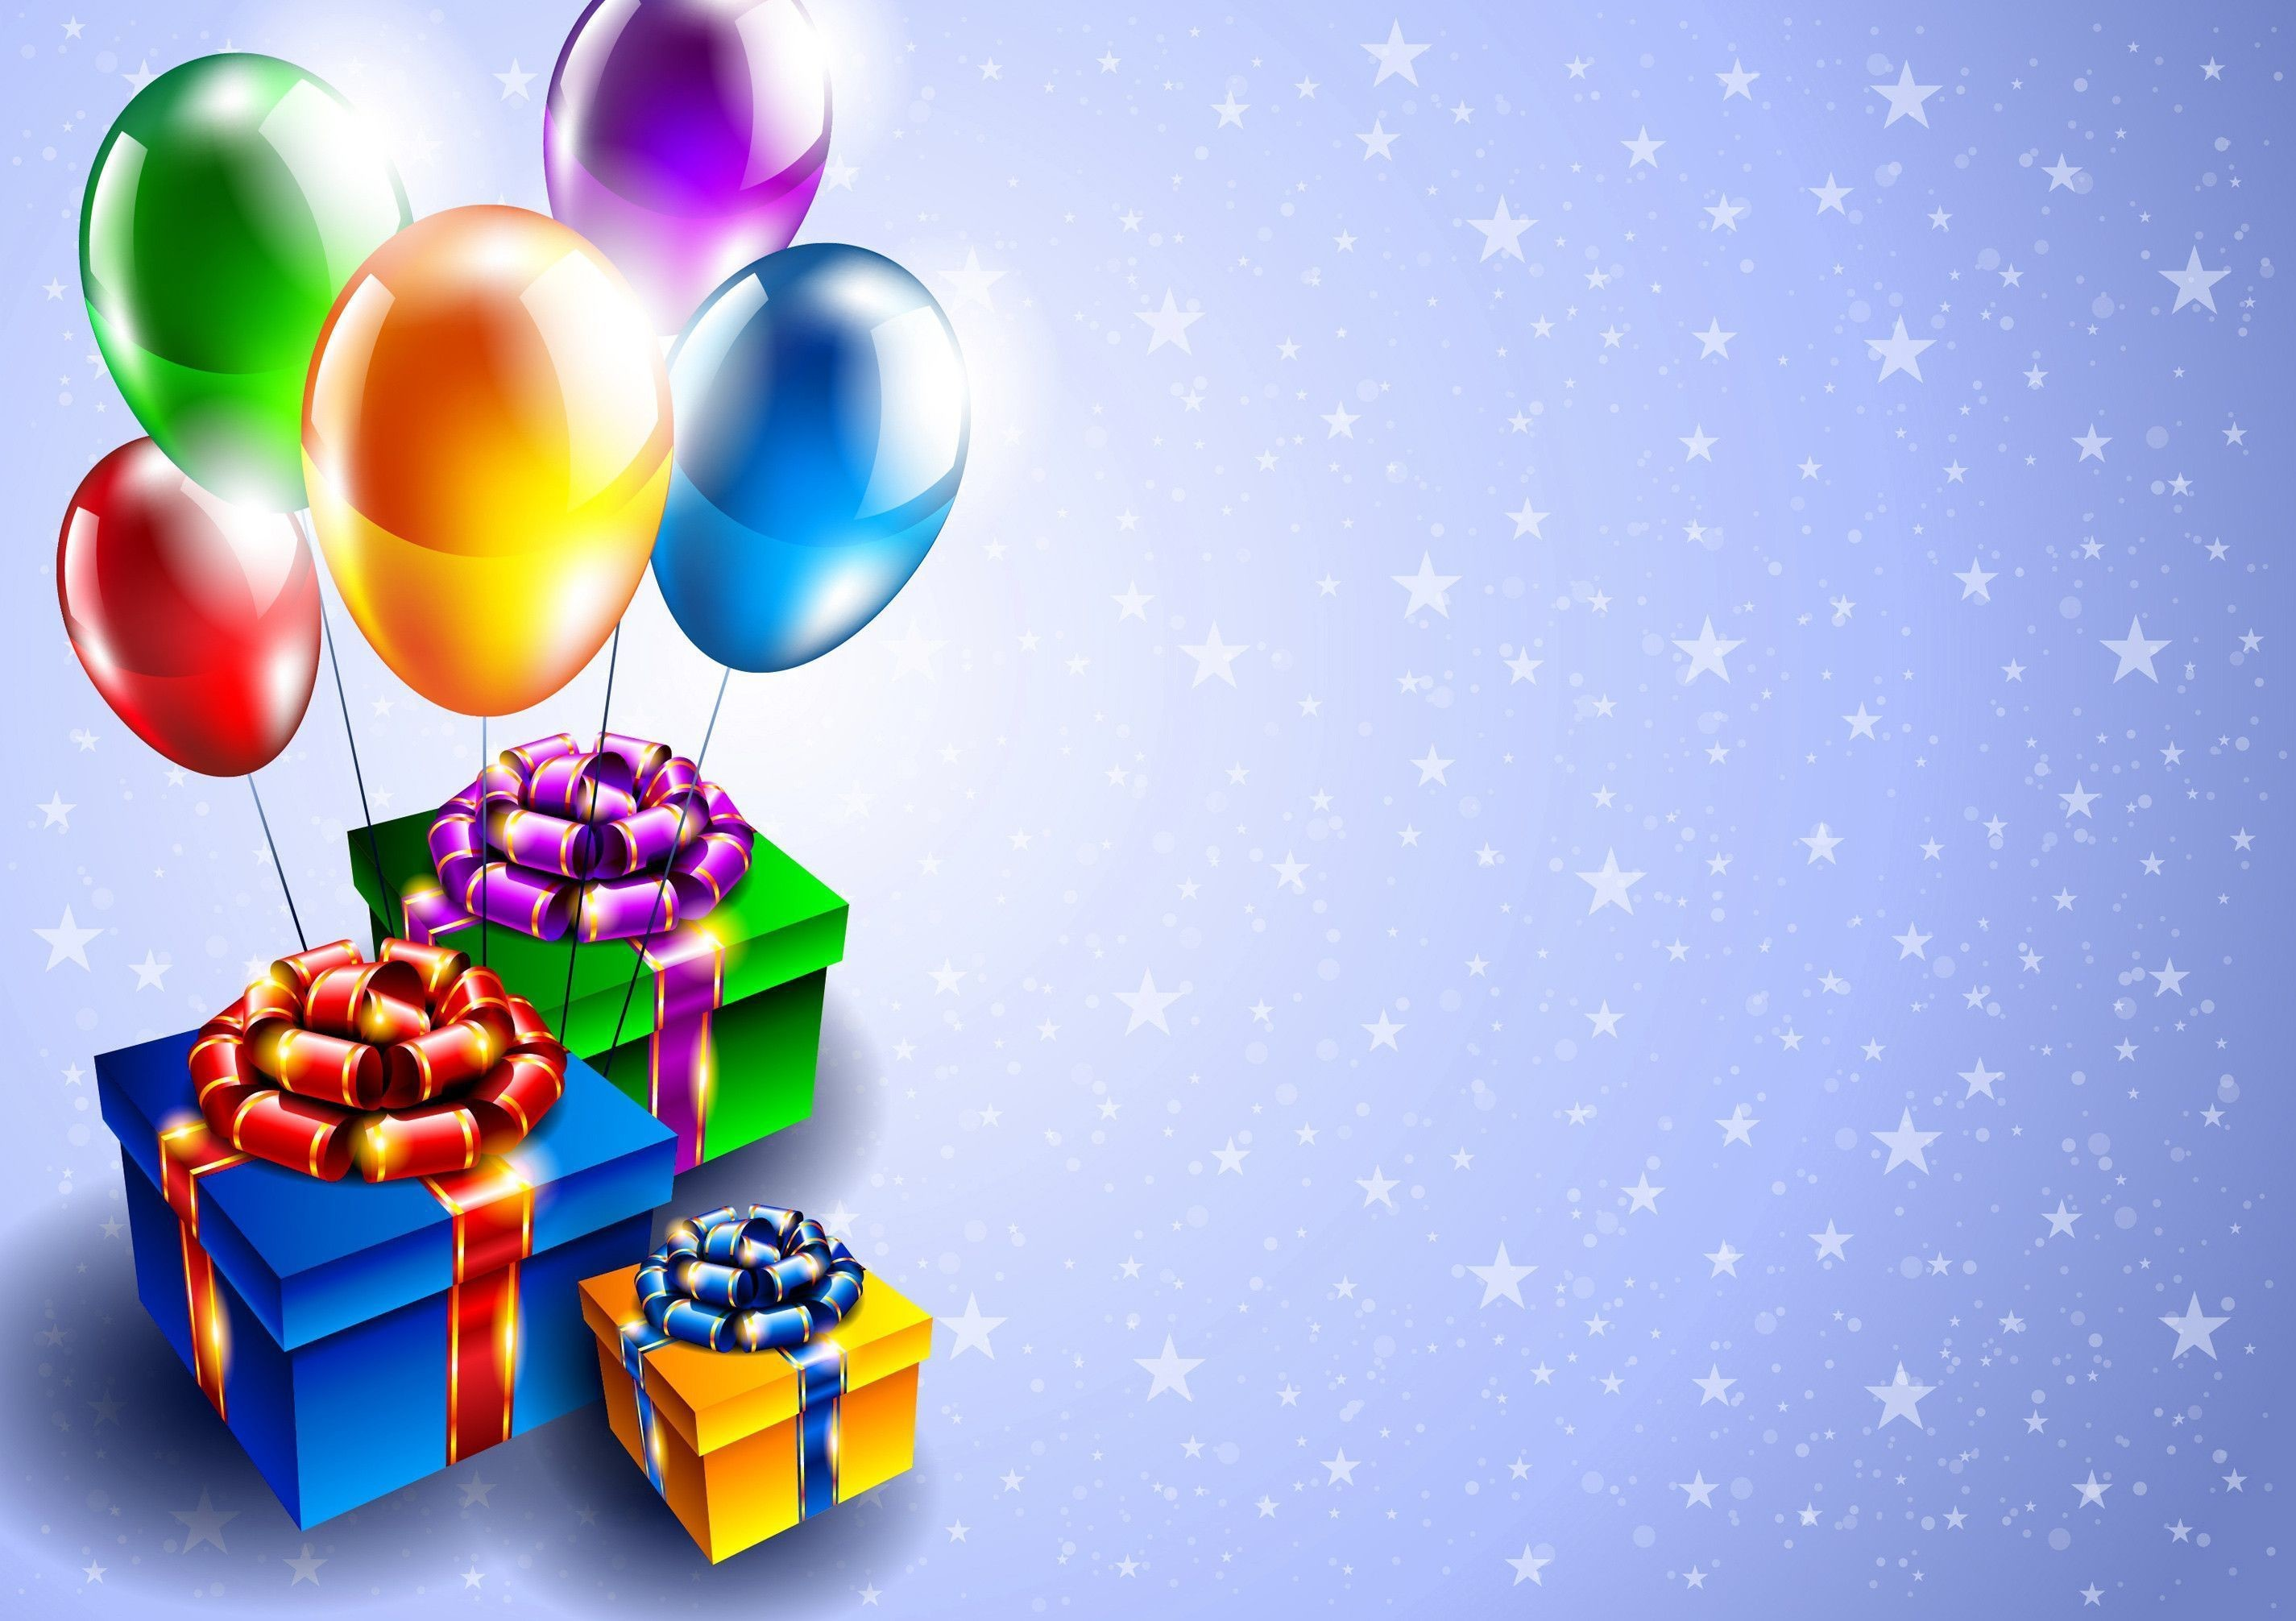 Res: 2850x2012, birthday-background-images-hd-3